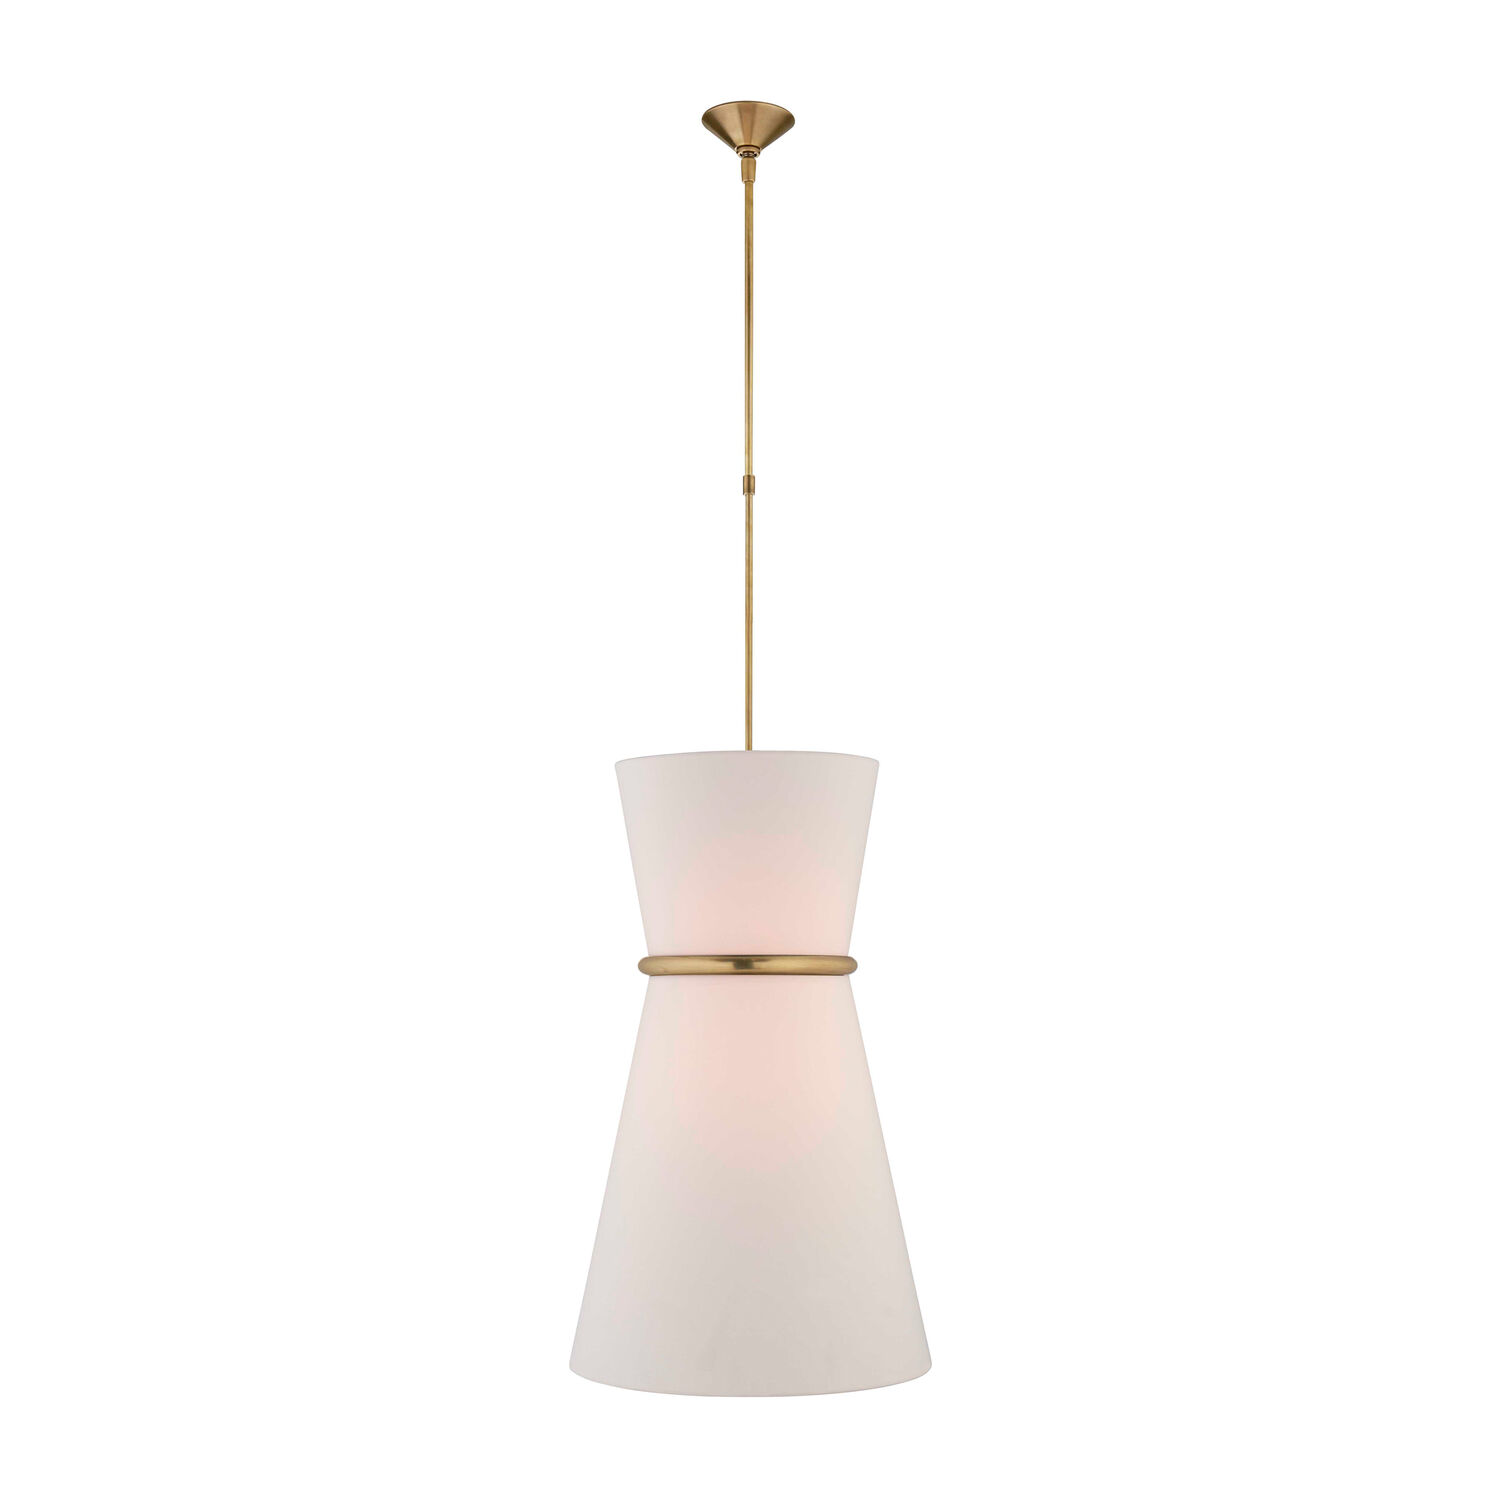 Clarkson Large Single Pendant